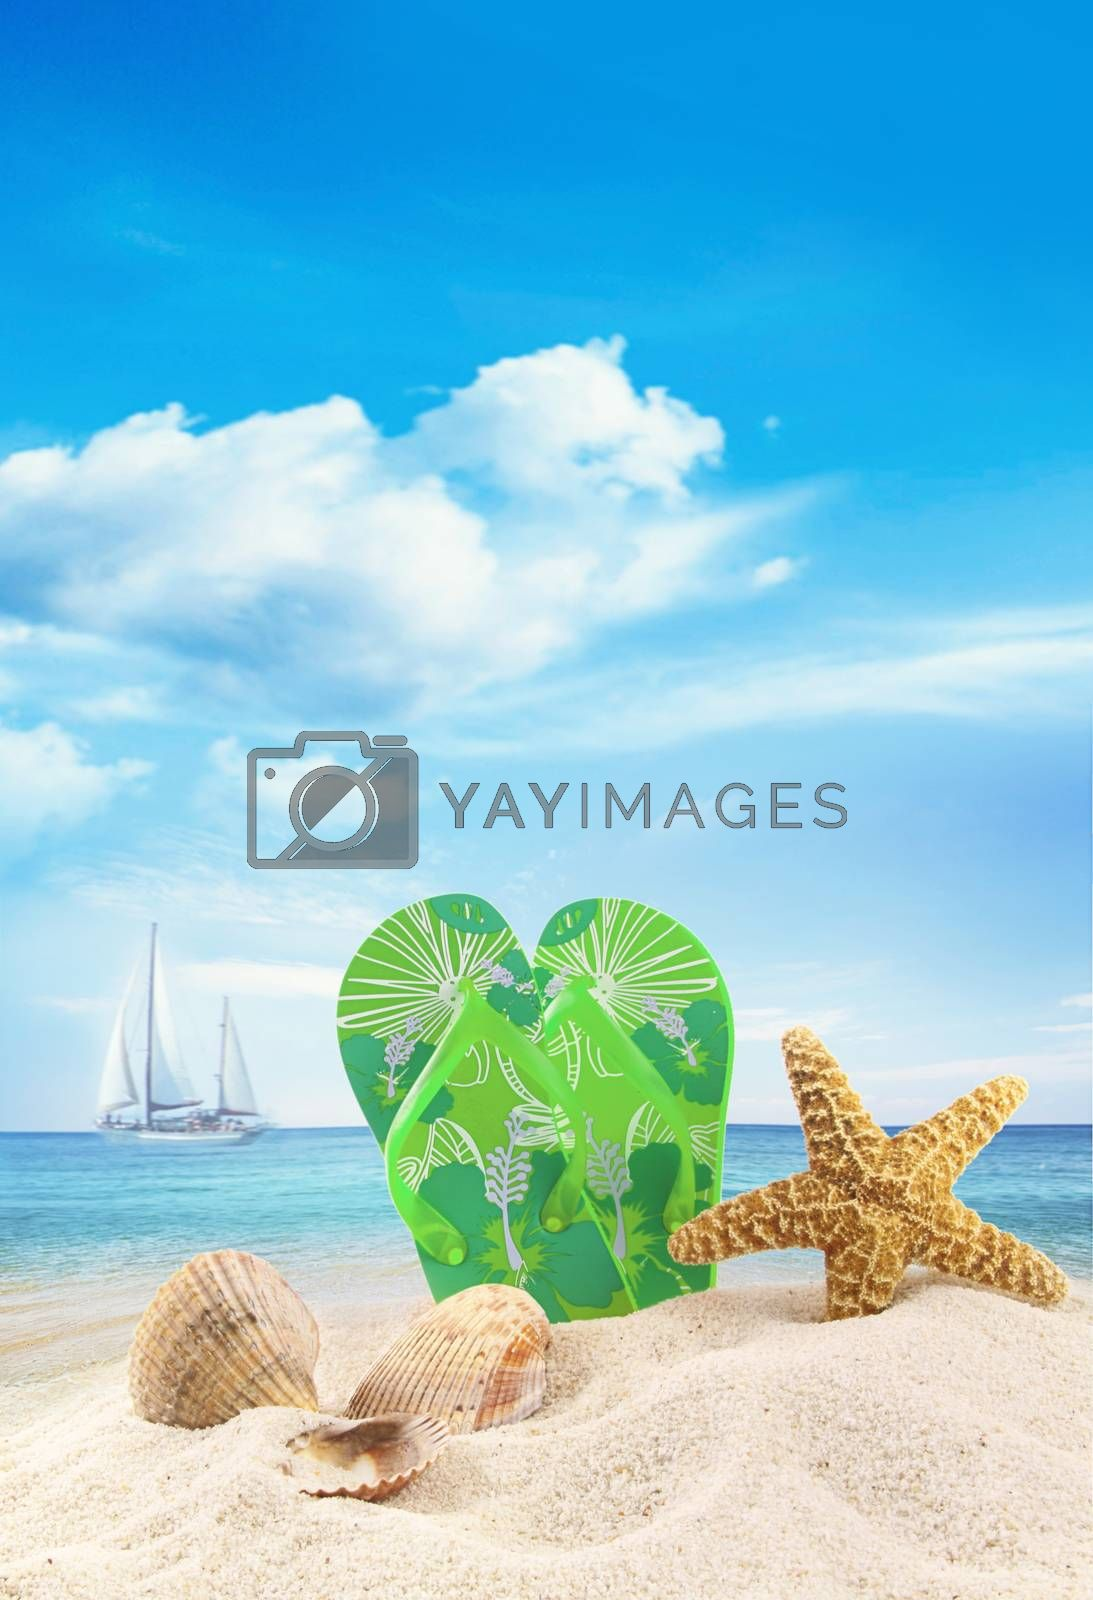 Sandals and seashells in the sand at the ocean